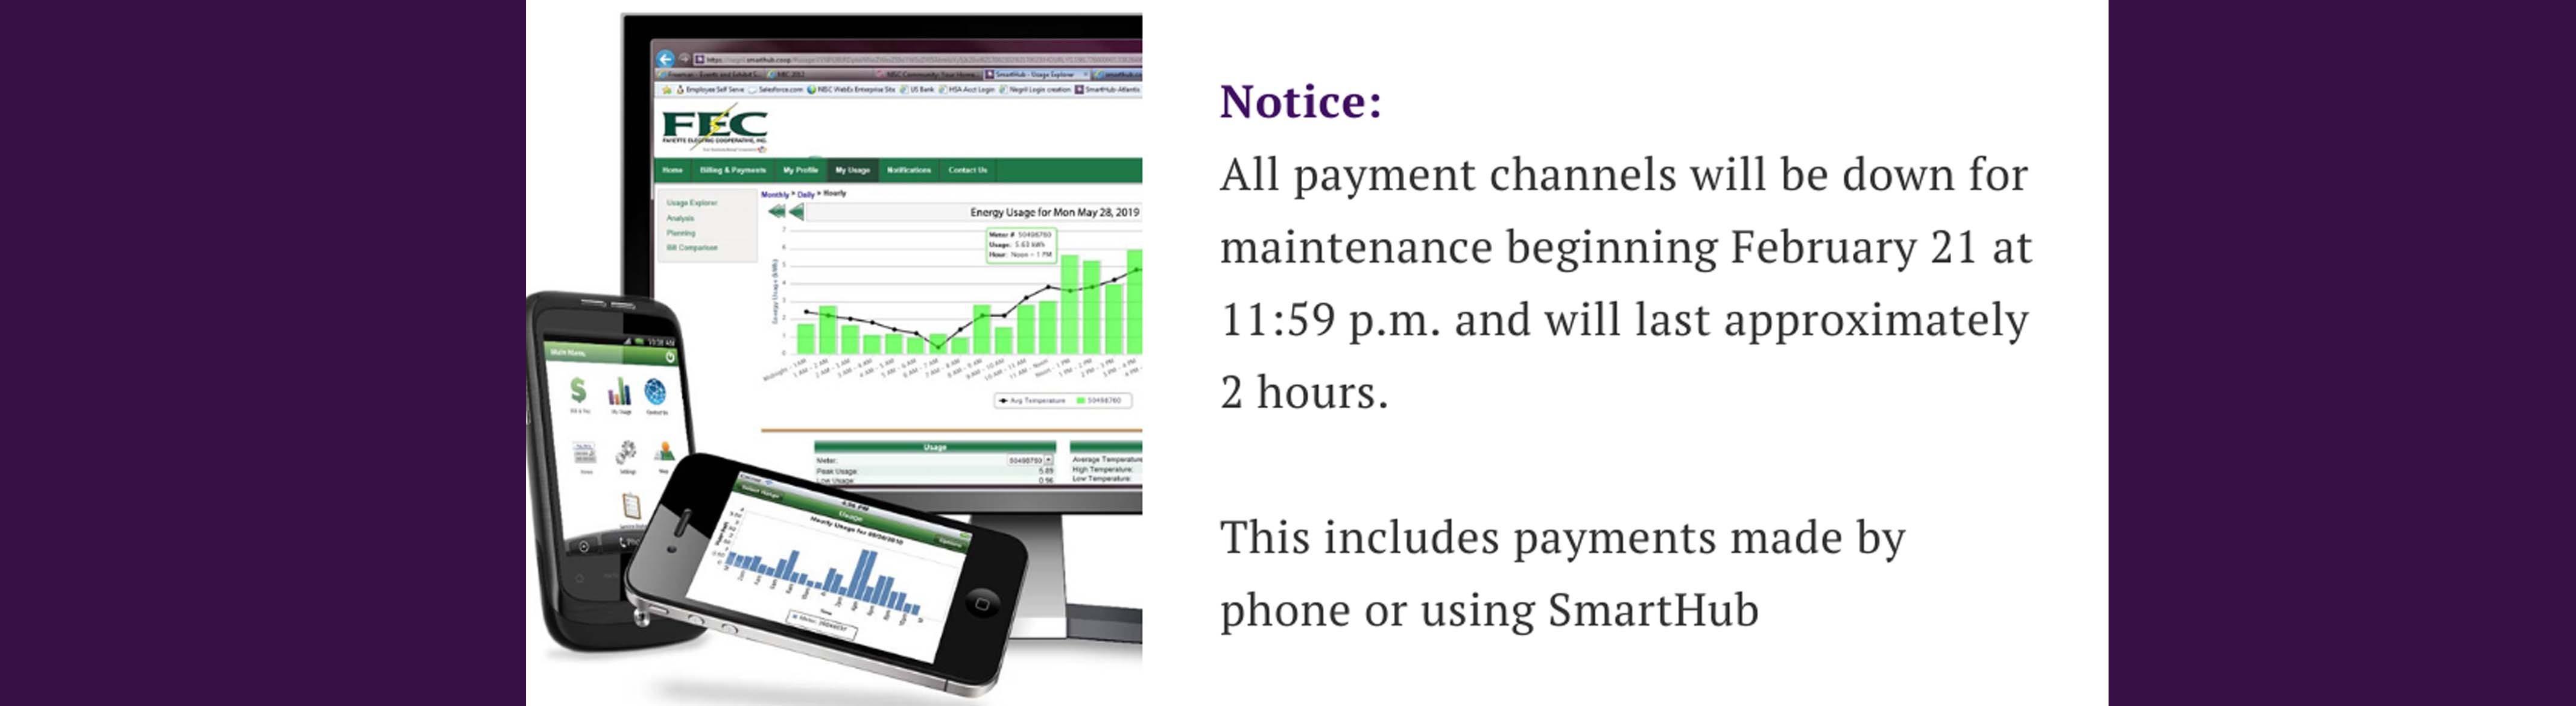 All payment channels will be down for maintenance Feb 21 beginning at 11:59 p.m.